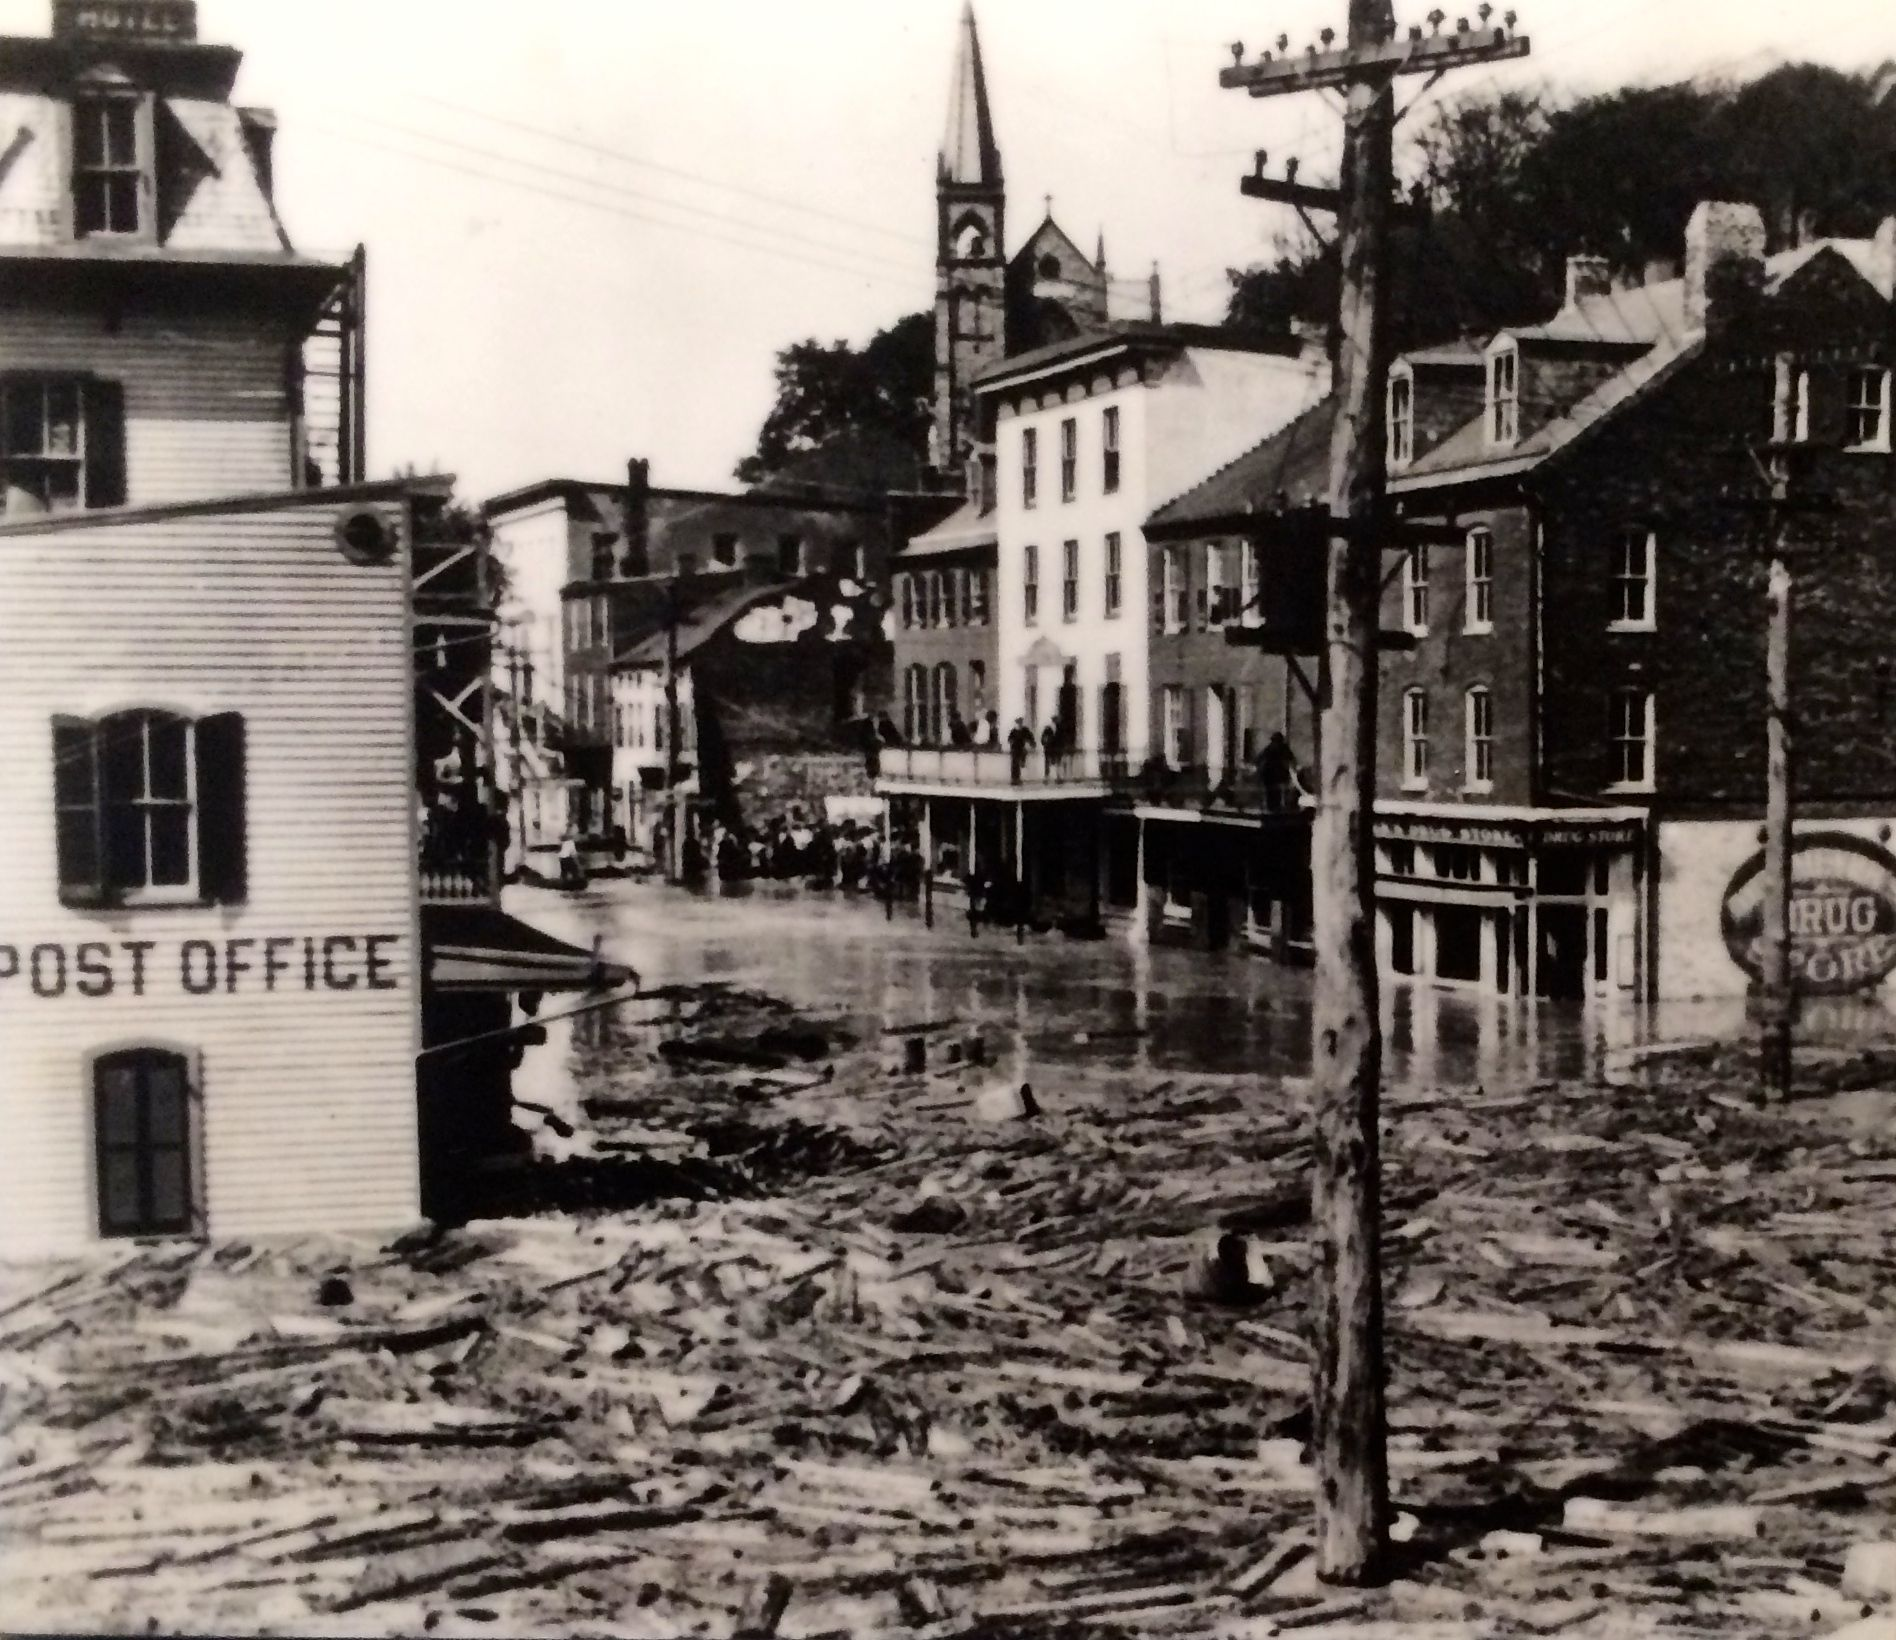 The flood of 1924